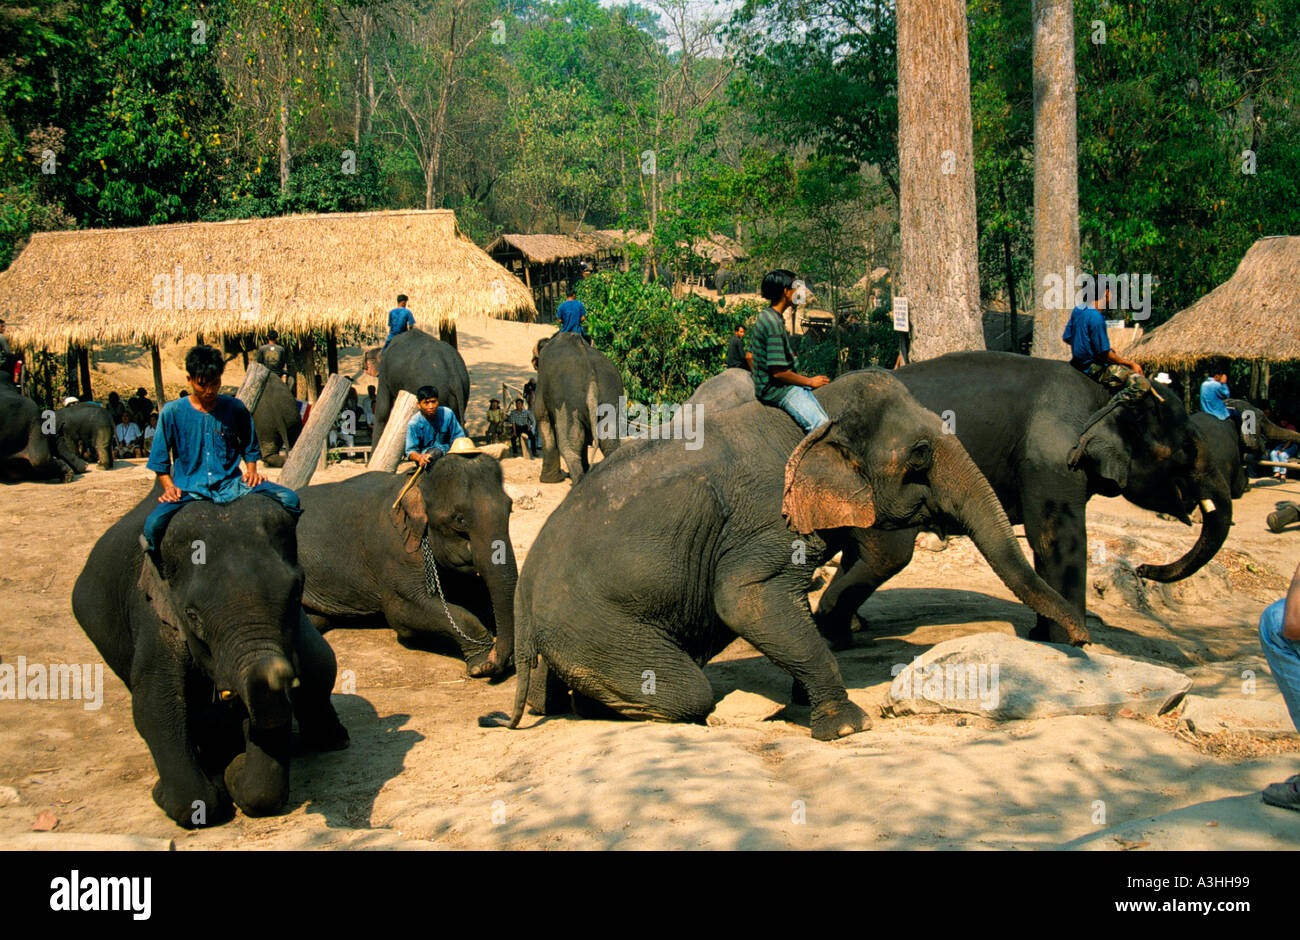 chiang dao elephant camp near city of chiang mai thailand editorial use only - Stock Image